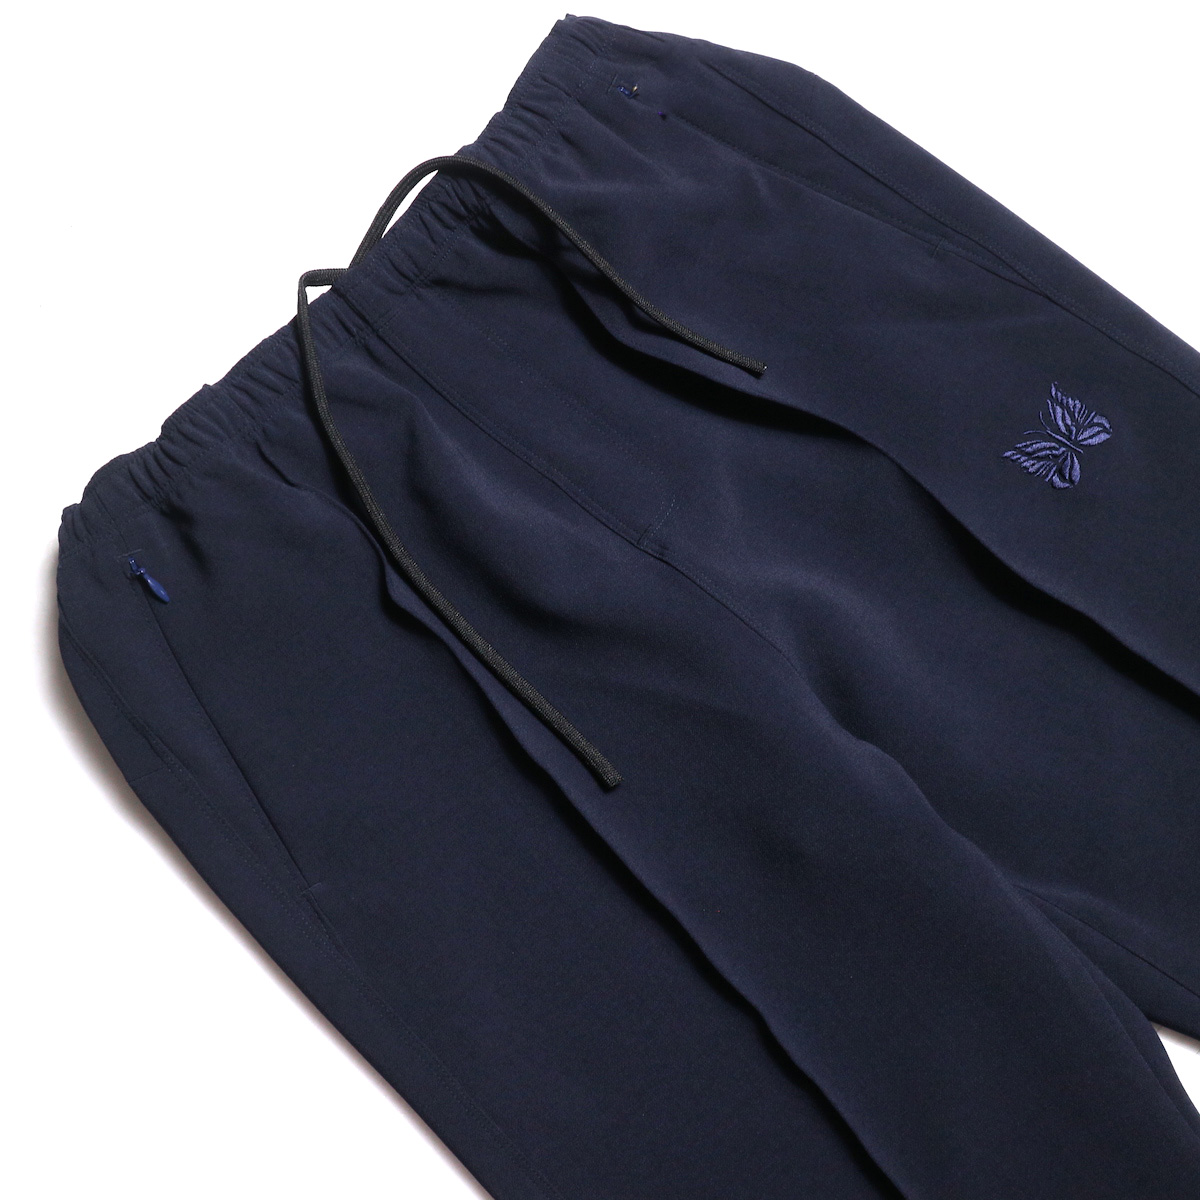 Needles / Warm-Up Boot-Cut Pant -Pe/W Sateen (Navy) ウエスト